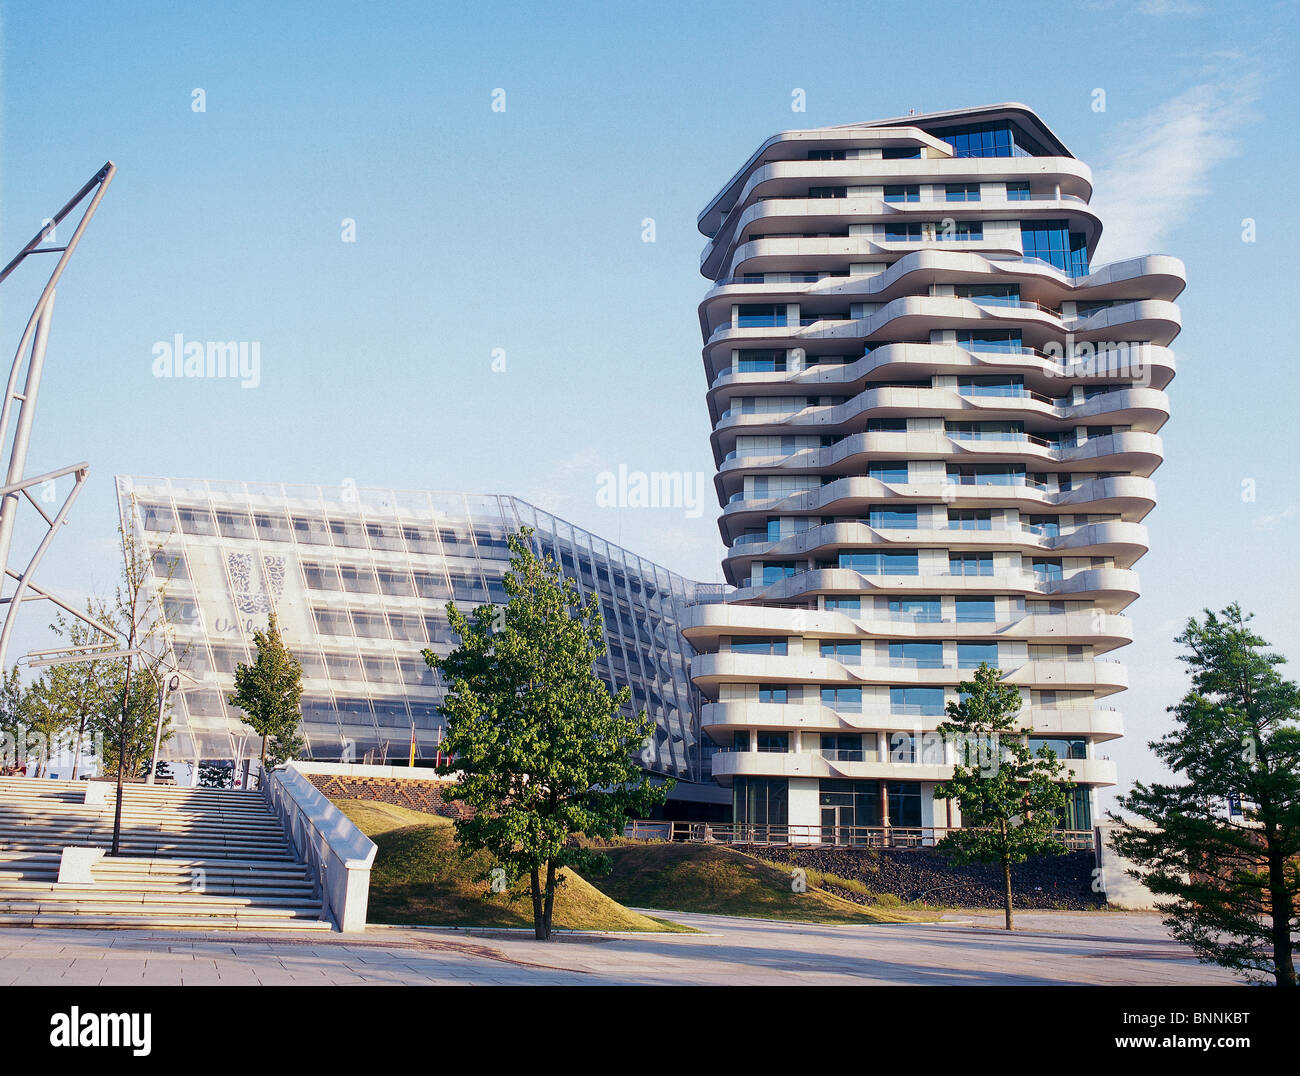 Marco Polo Tower The New Marco Polo Tower In Hamburg Build By Behnisch Architects Stock Photo - Alamy